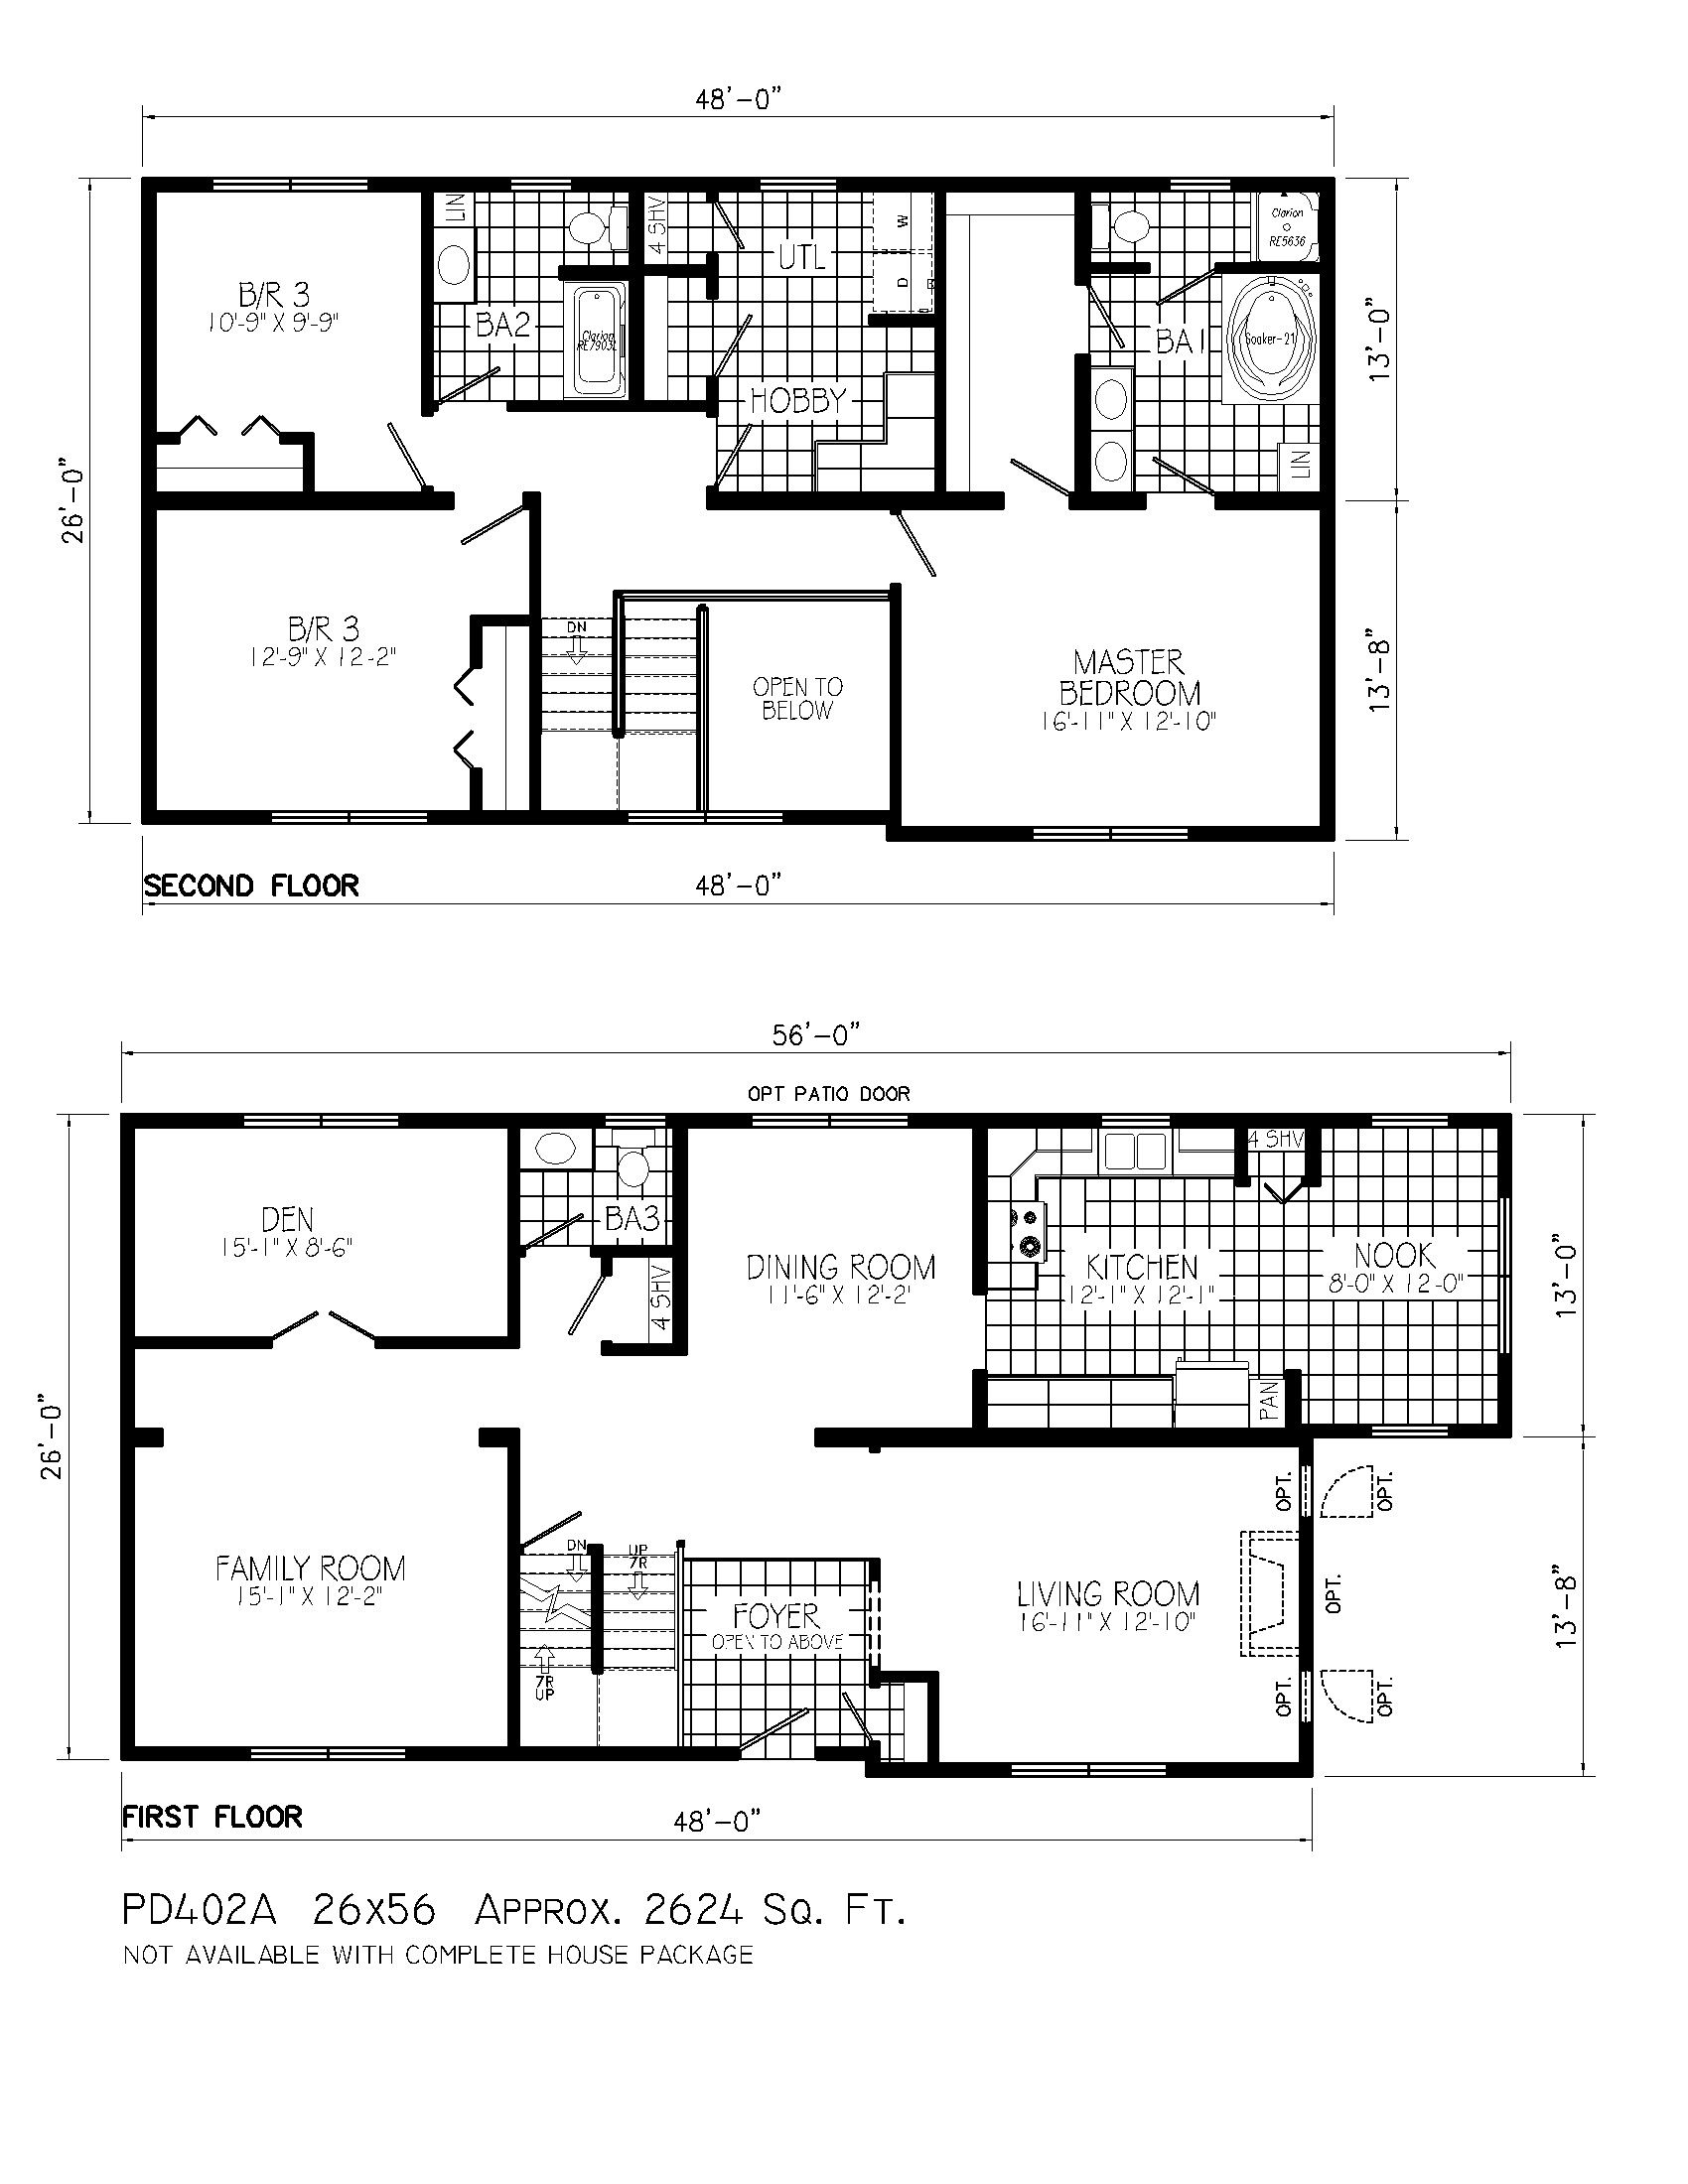 Small two story cabin floor plans with house under 1000 sq for Modern house plans under 1000 sq ft